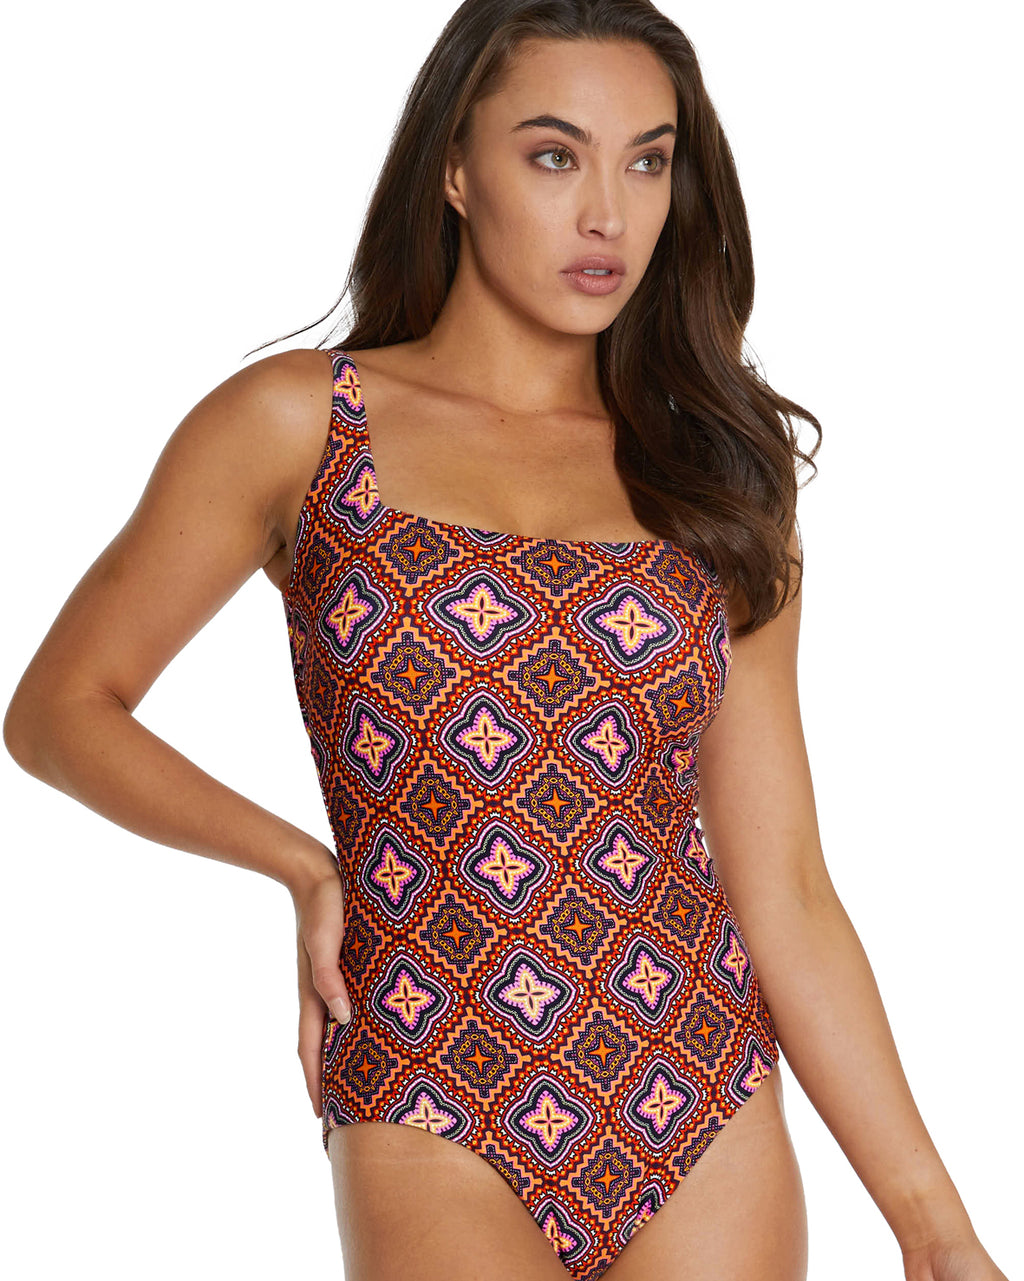 HACIENDA D-E UNDERWIRE SQUARE ONE PIECE SWIMSUIT